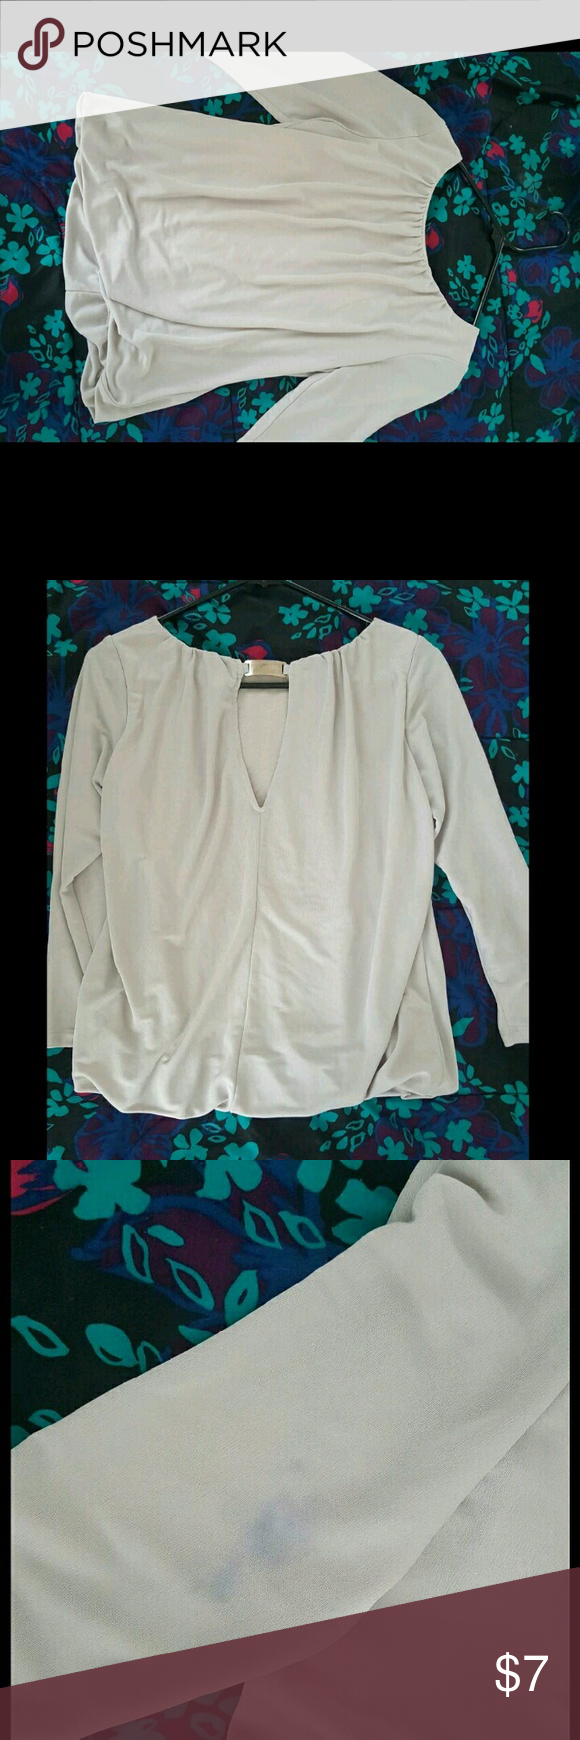 Pale Pink Blouse It is used with a spot on the sleeve H&M Tops Blouses